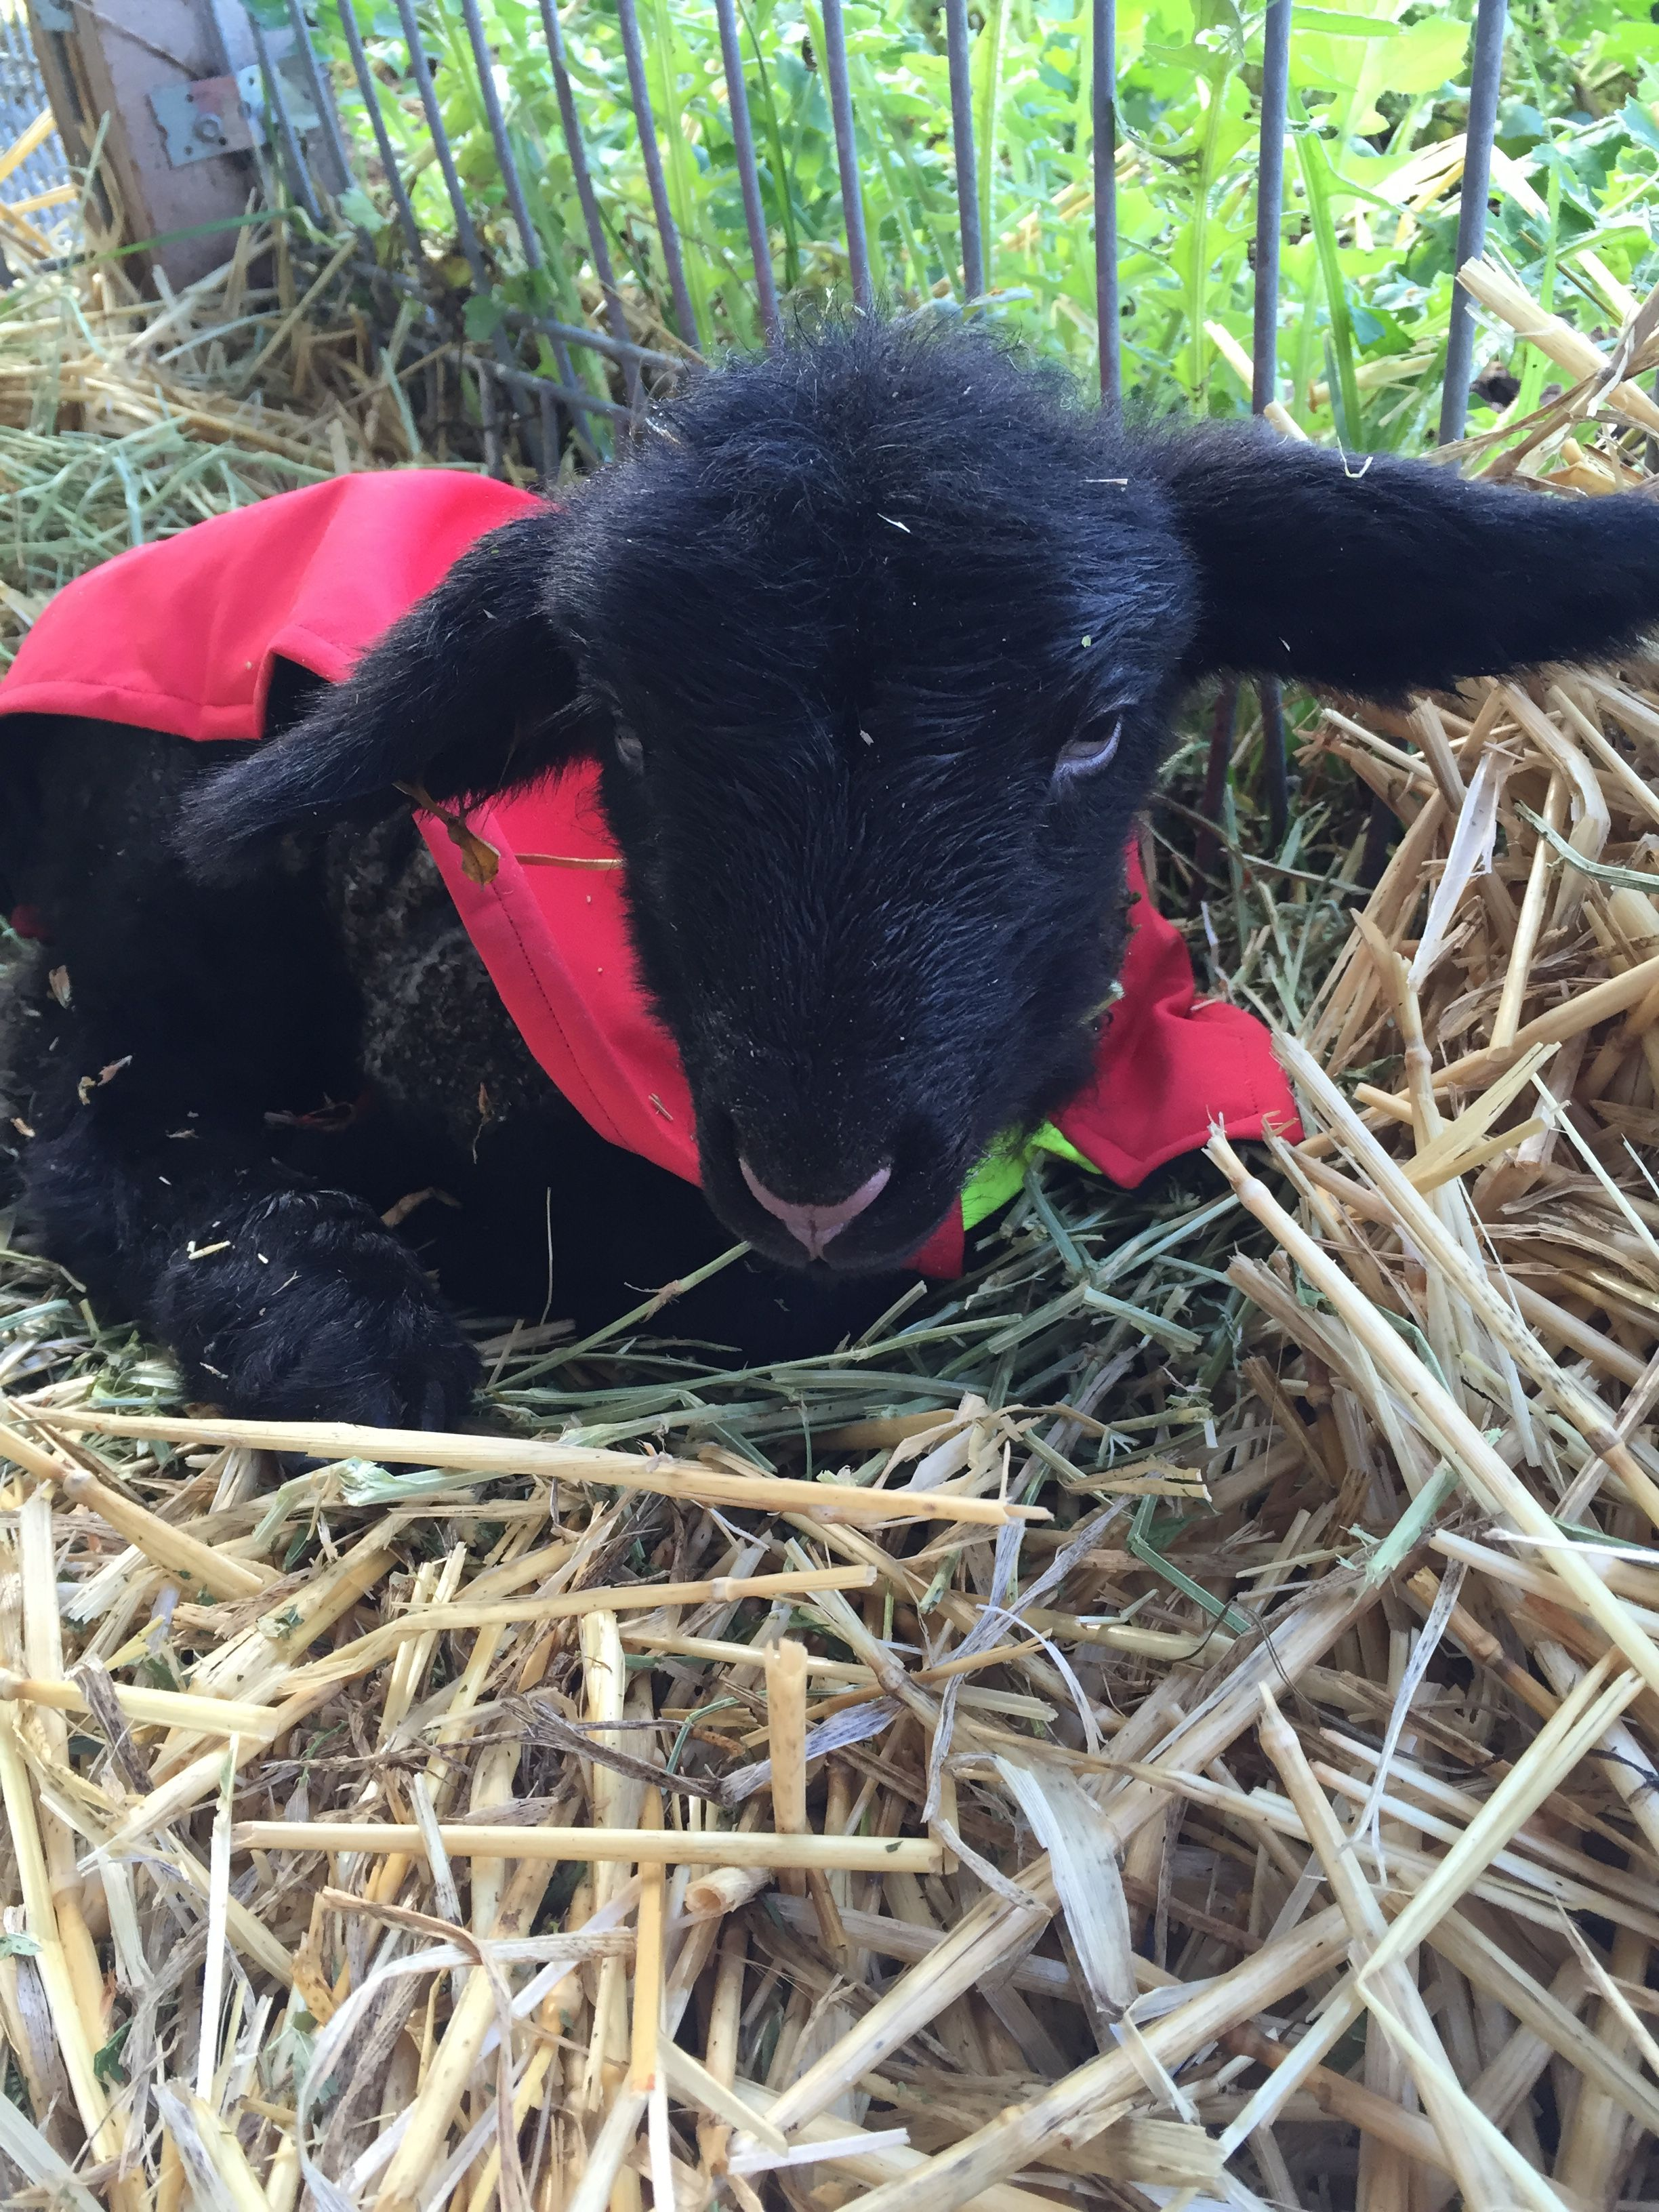 Meet Ormiston Lassie Alison life is hard being 3 hours old